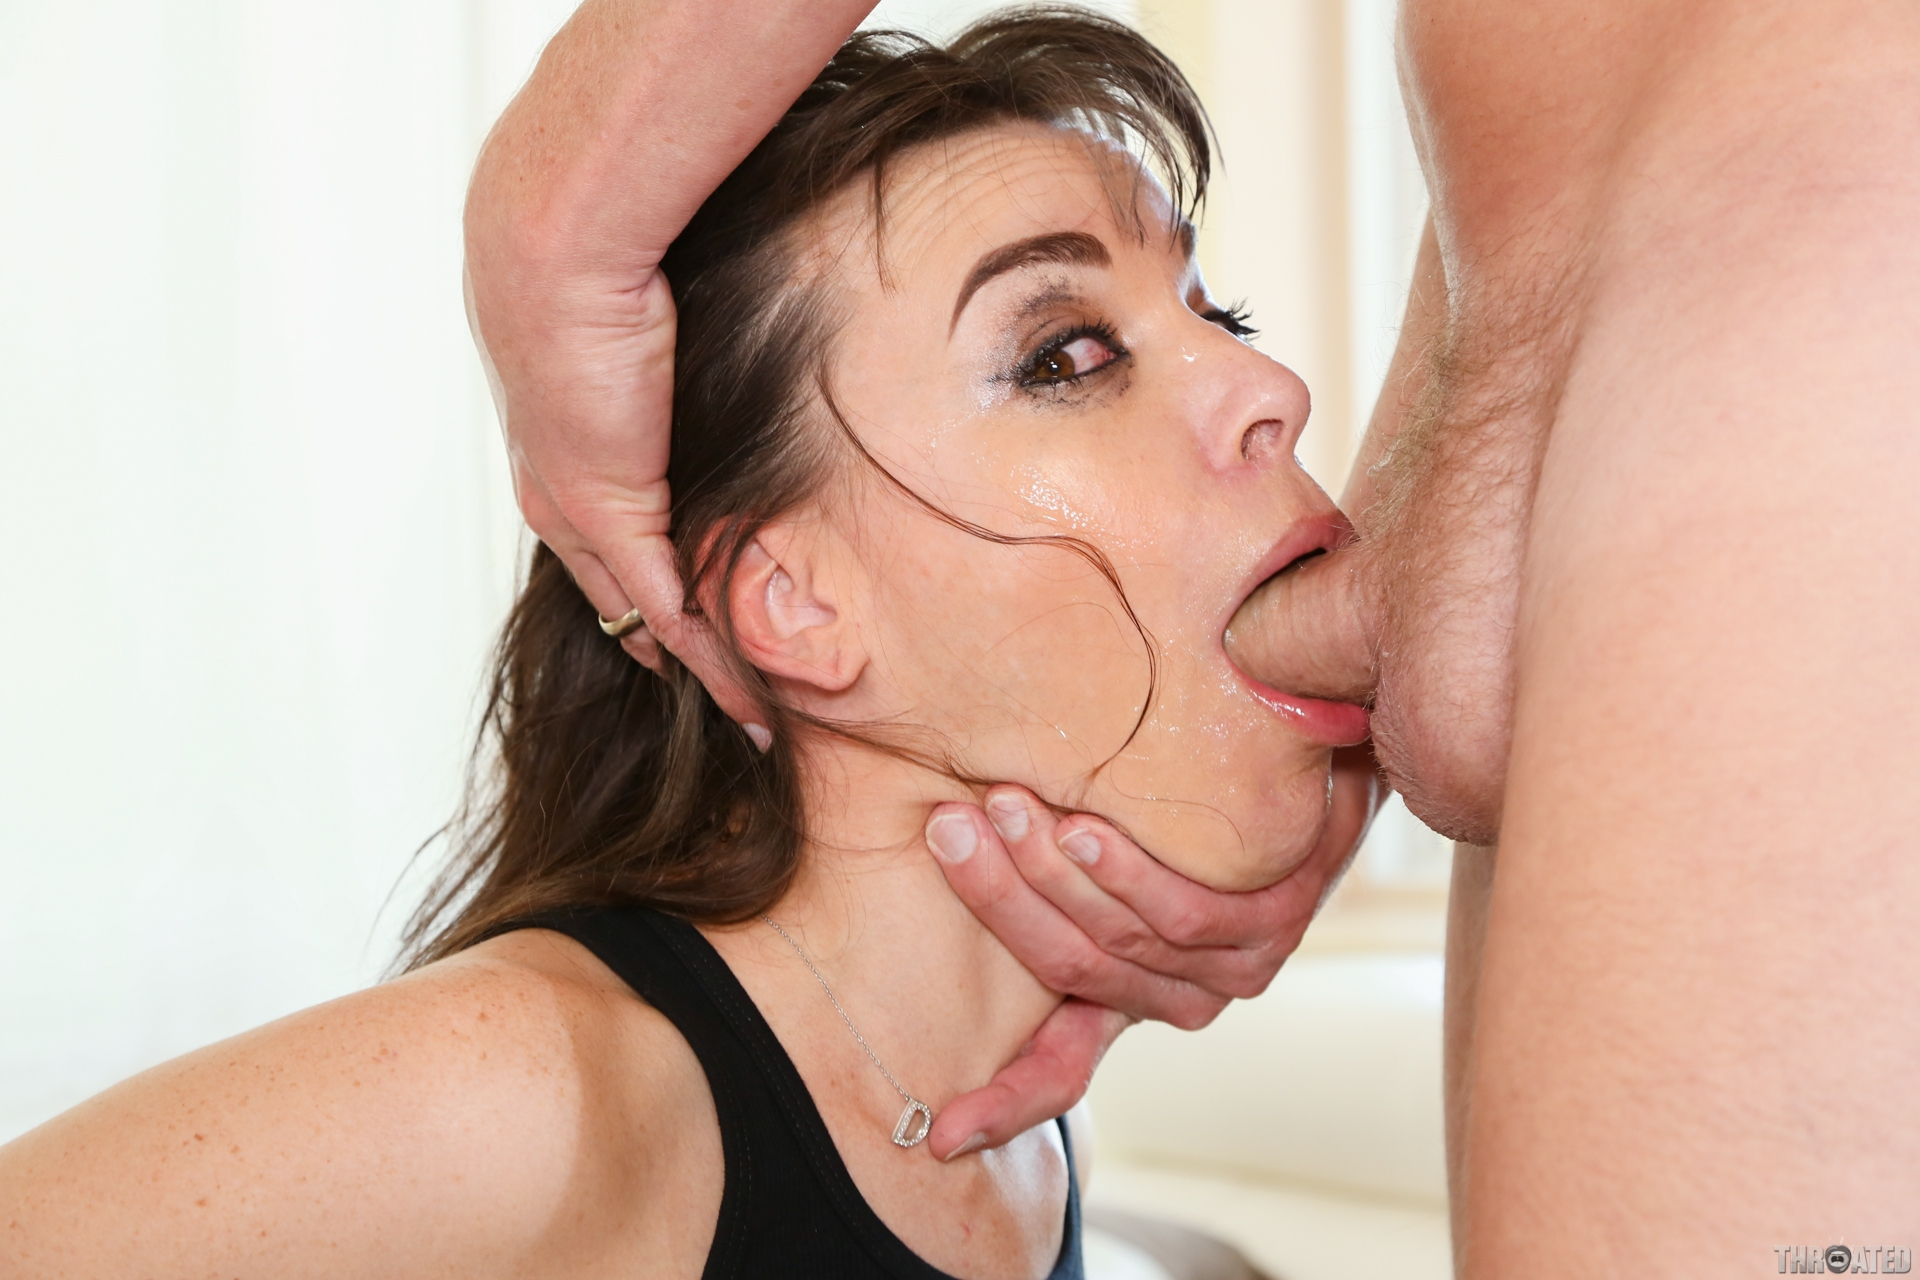 Heather deep throat pictures, chubby gay sex